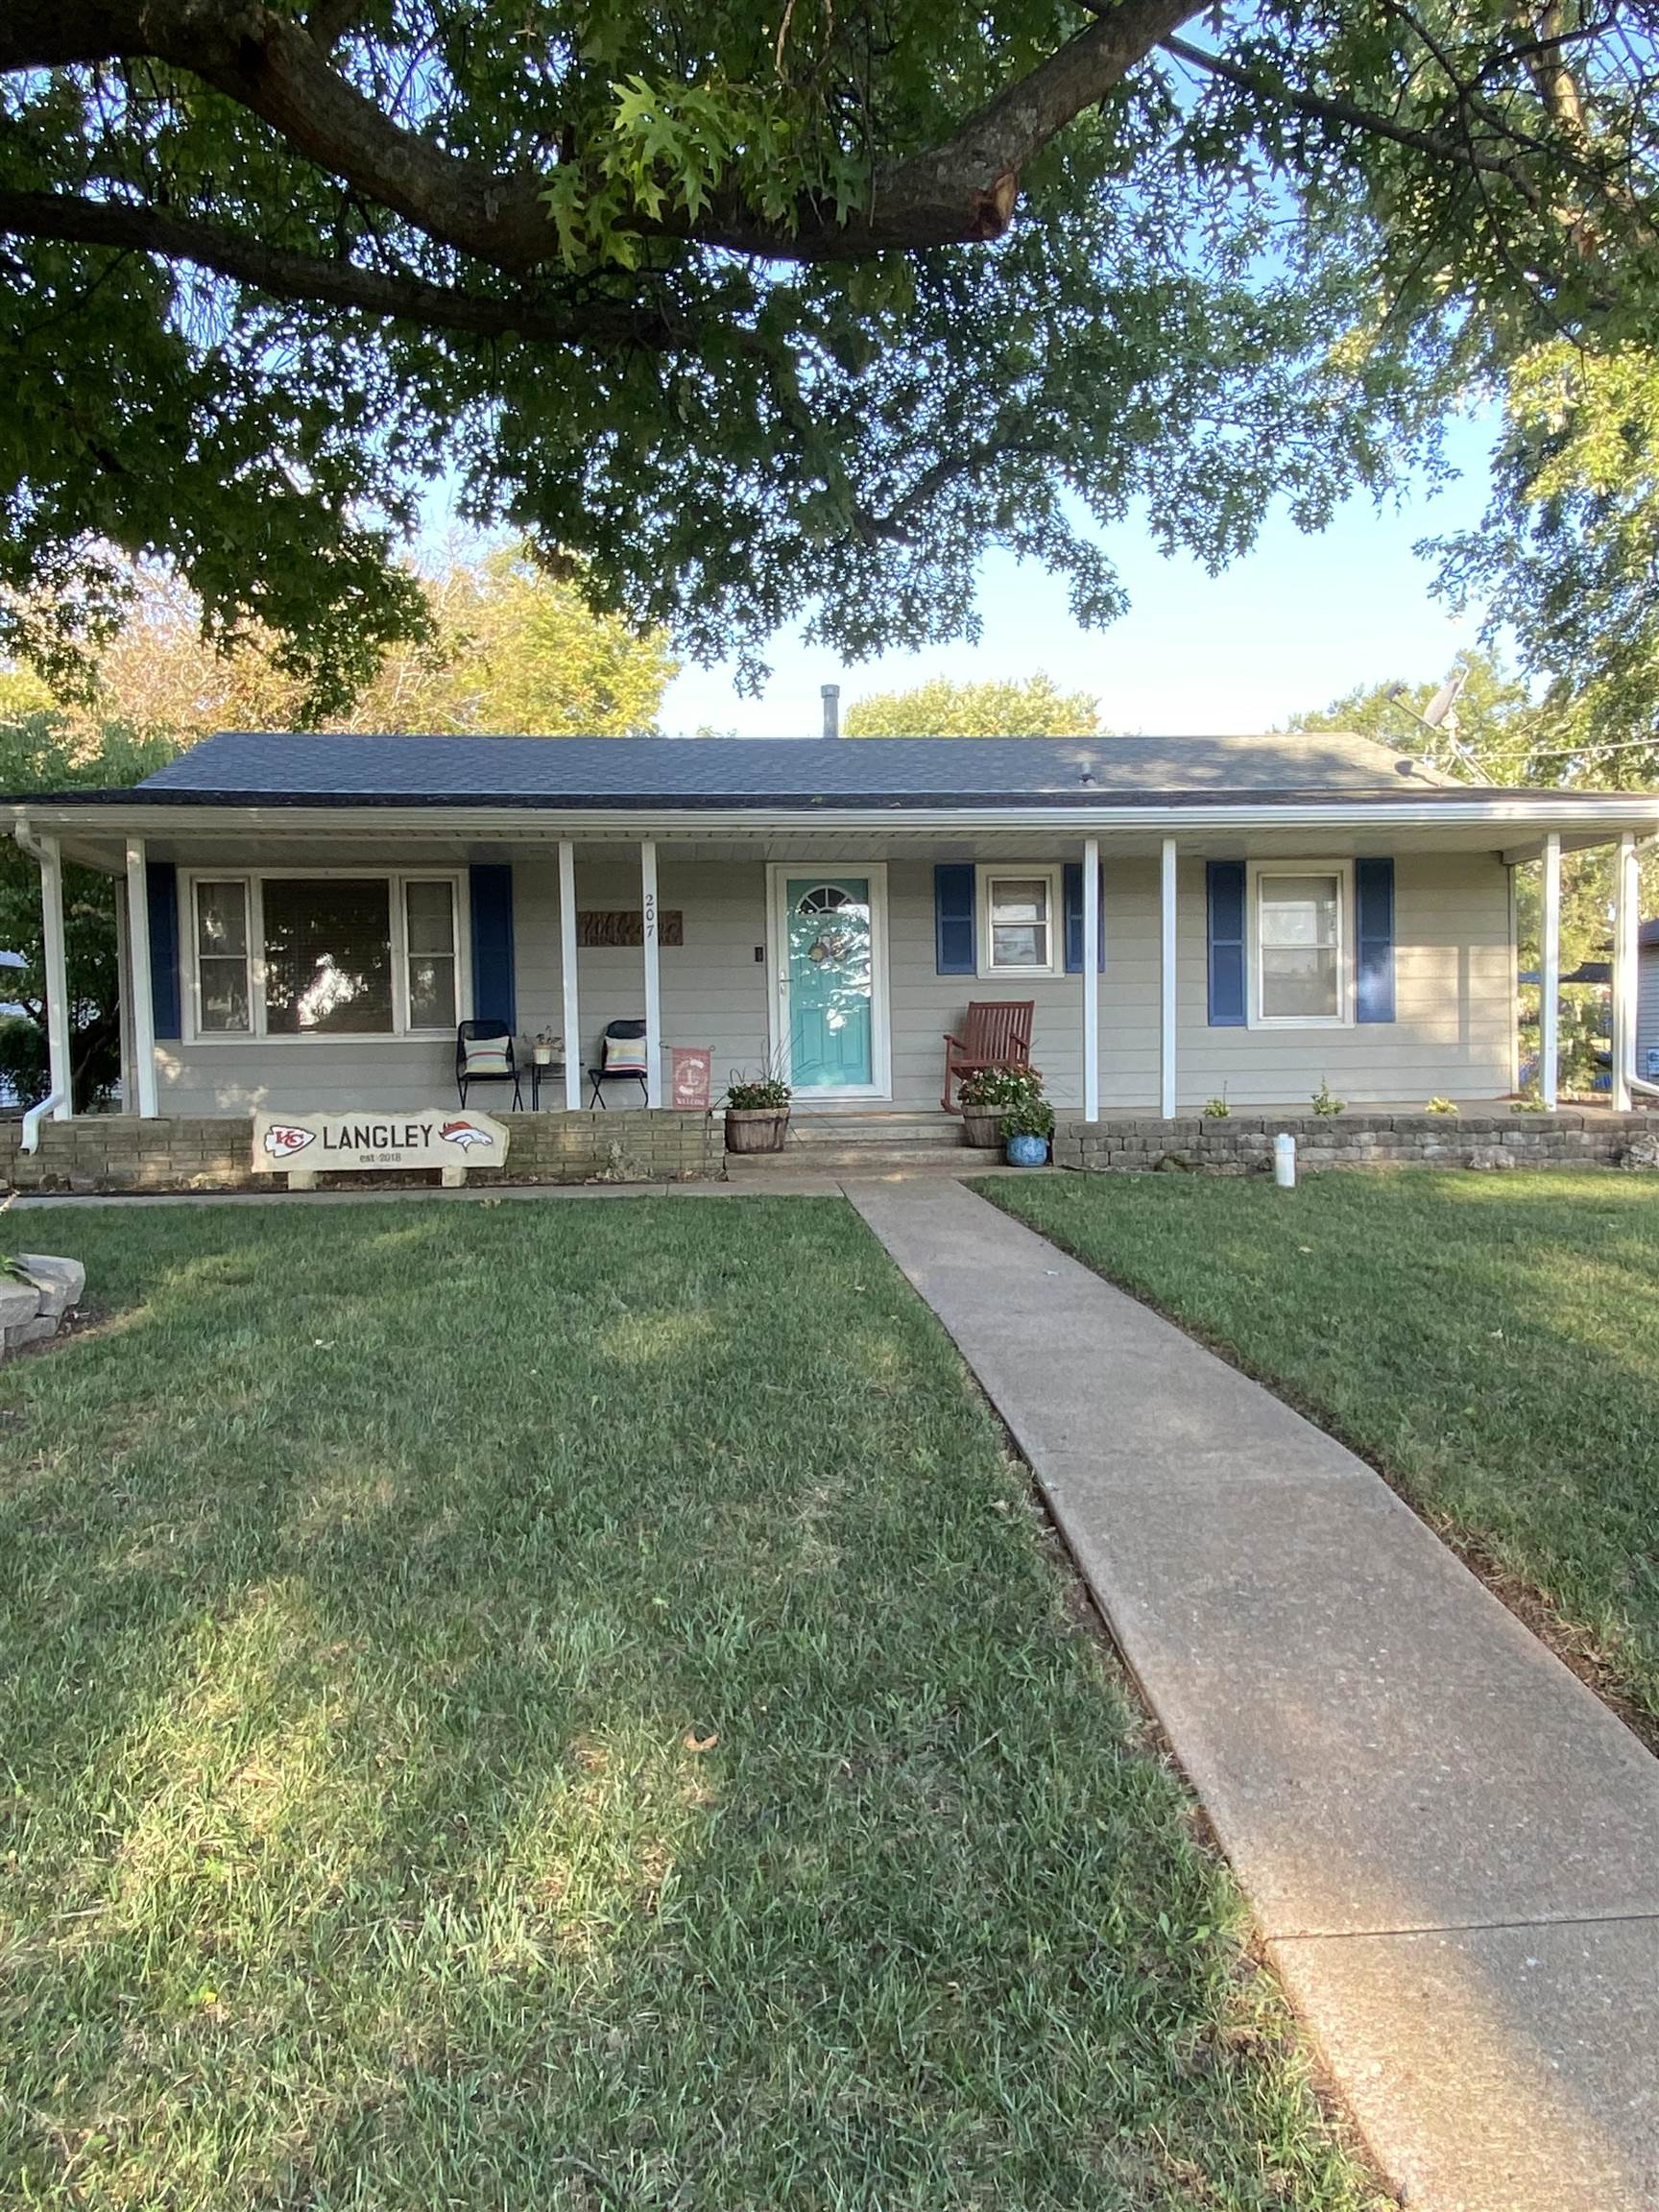 From the front porch curb appeal, to each of the generously spacious rooms, this home is a dream hou